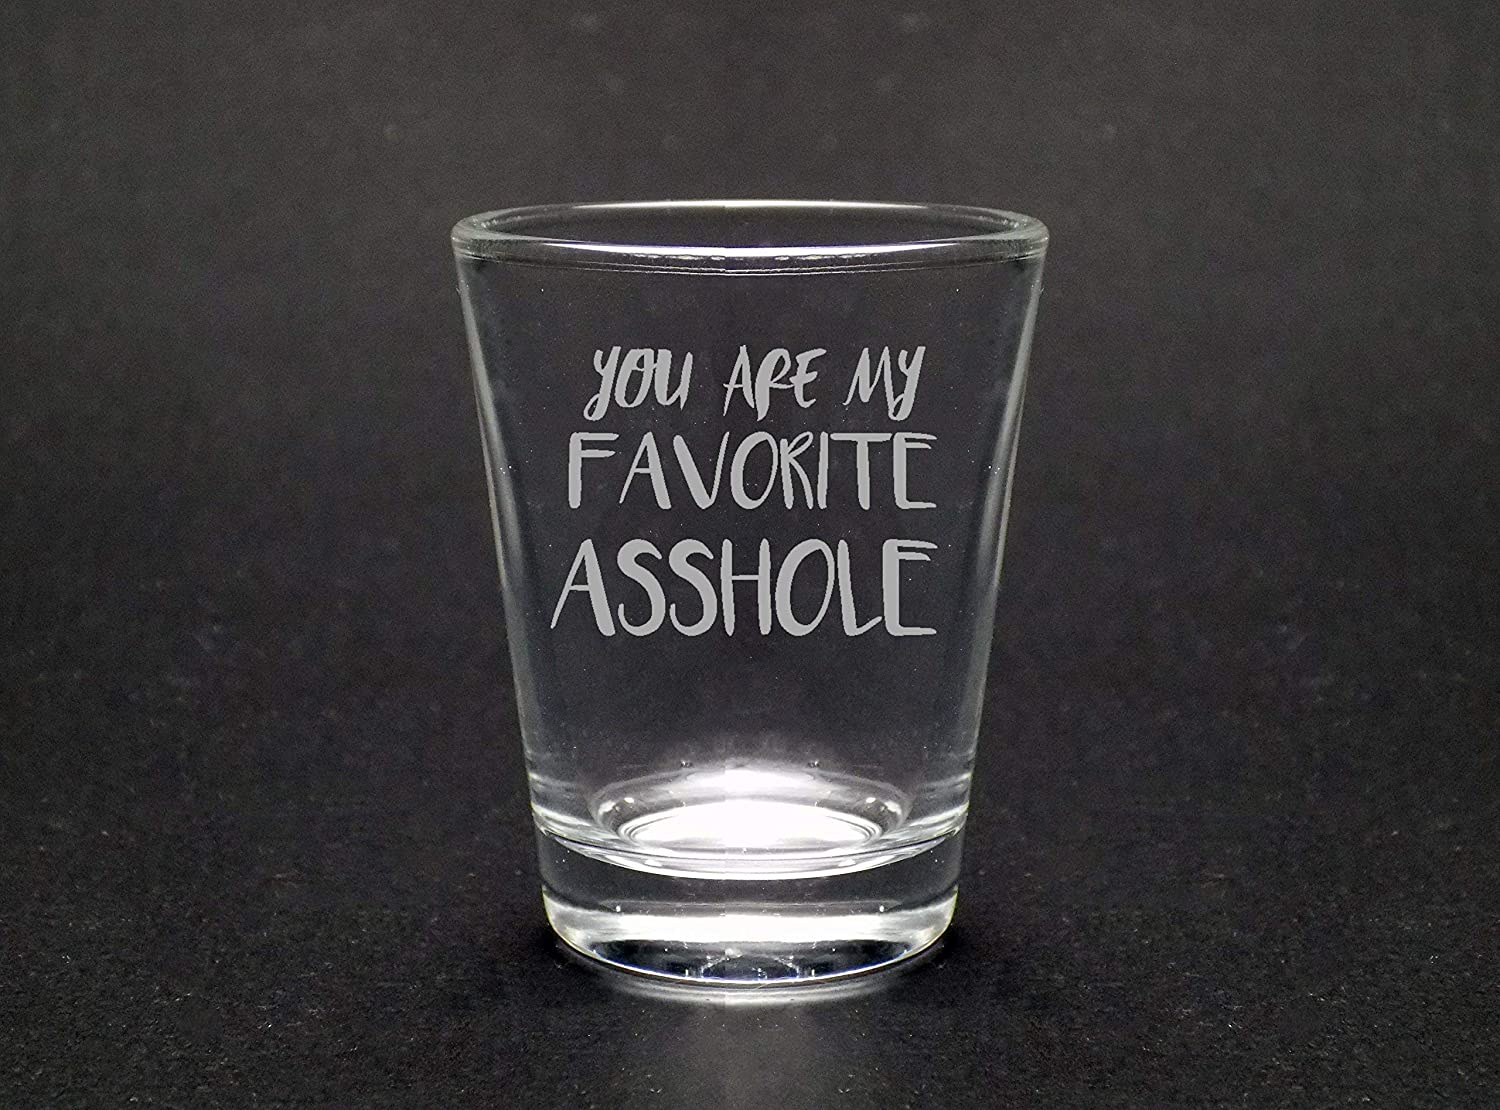 You Are My Favorite Asshole 1.75 Oz Shot Glass